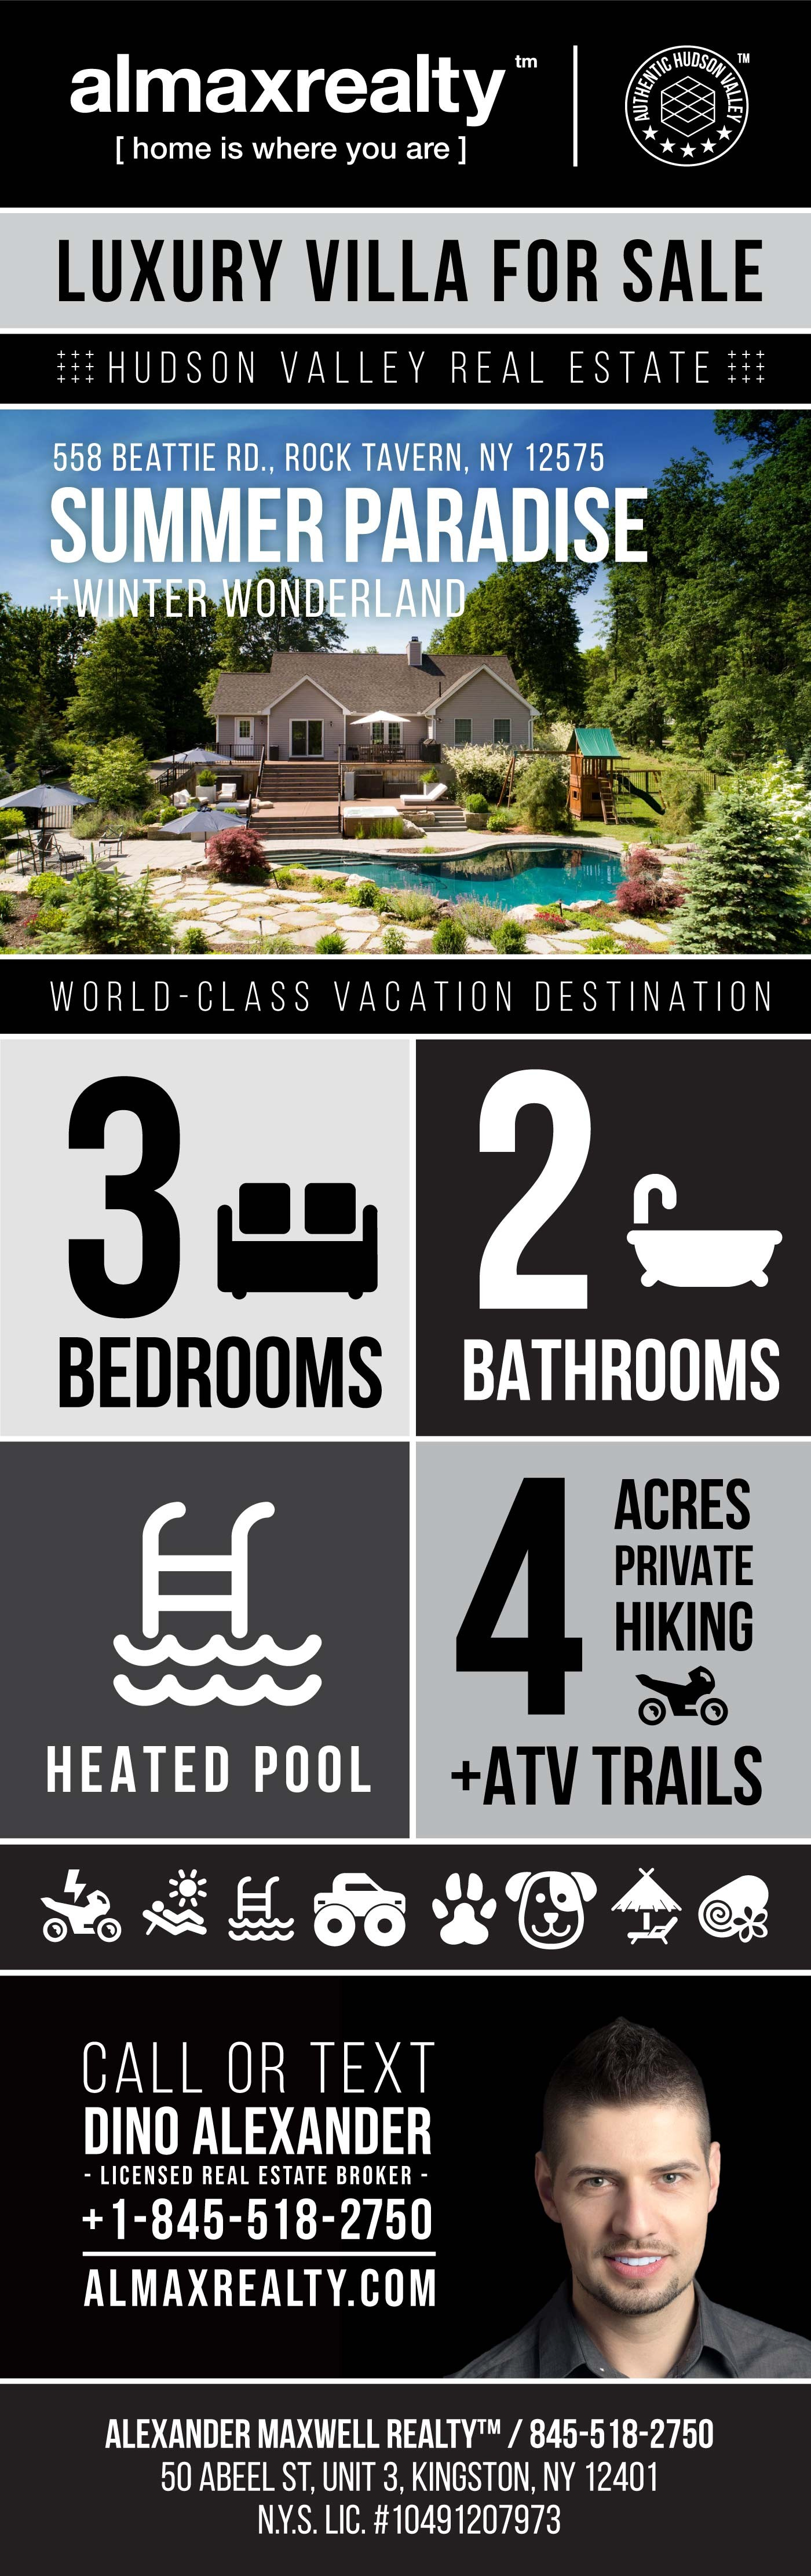 Infographic - Luxury Hudson Valley Home for Sale with a Pool and Organic Garden for Sale - Rock Tavern, NY - Alexander Maxwell Realty